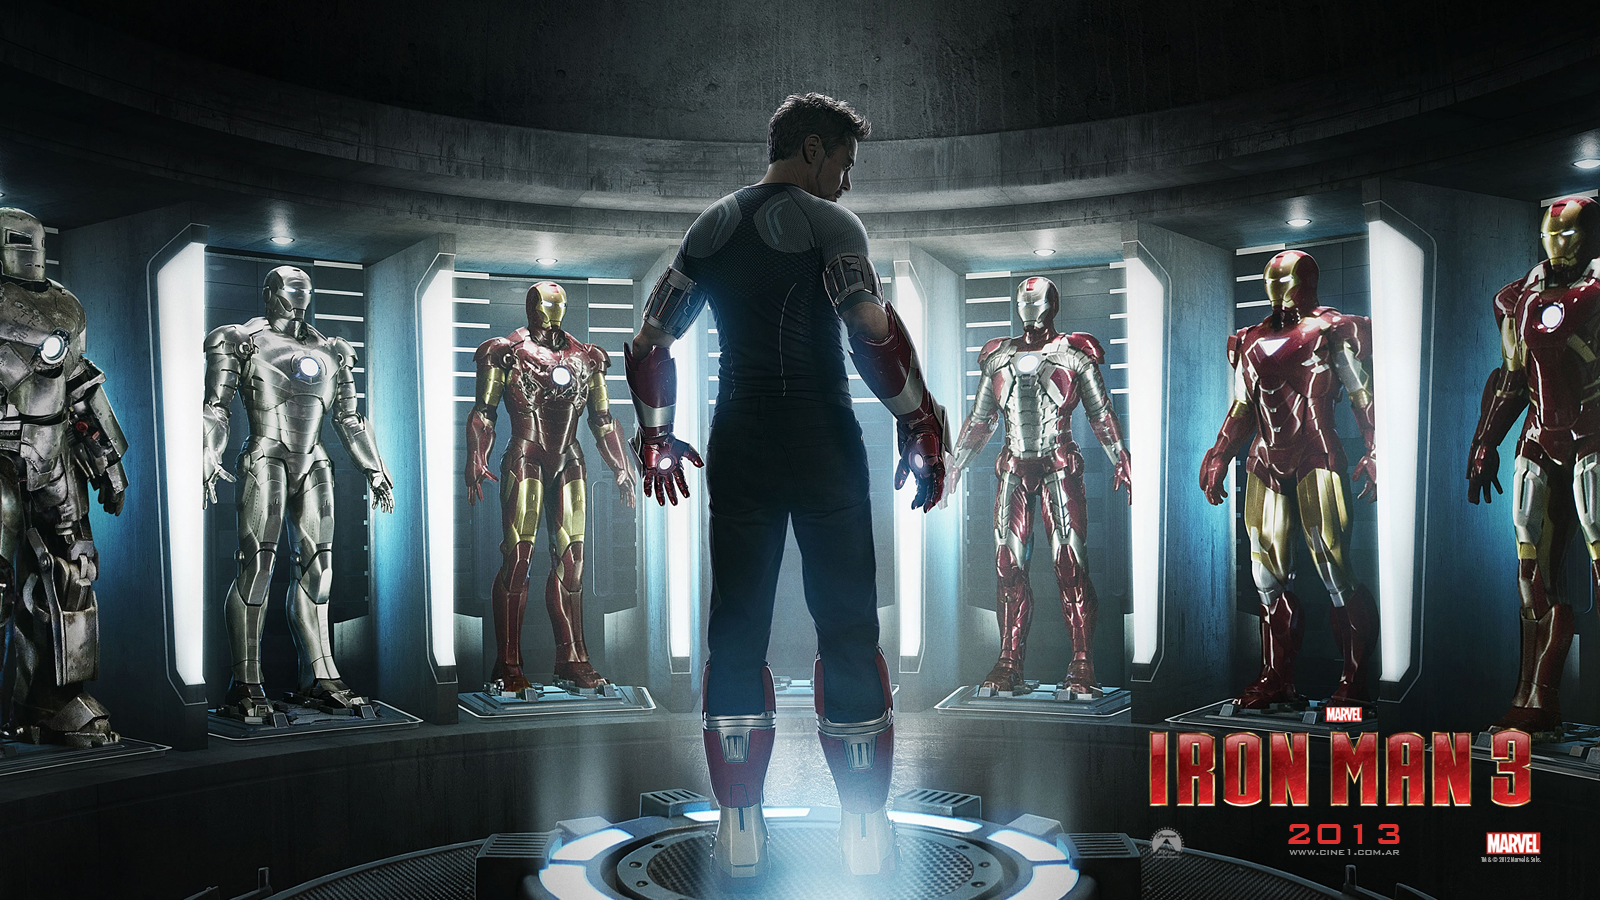 Iron-Man-3-Wallpaper-iron-man-3-33506132-1600-900